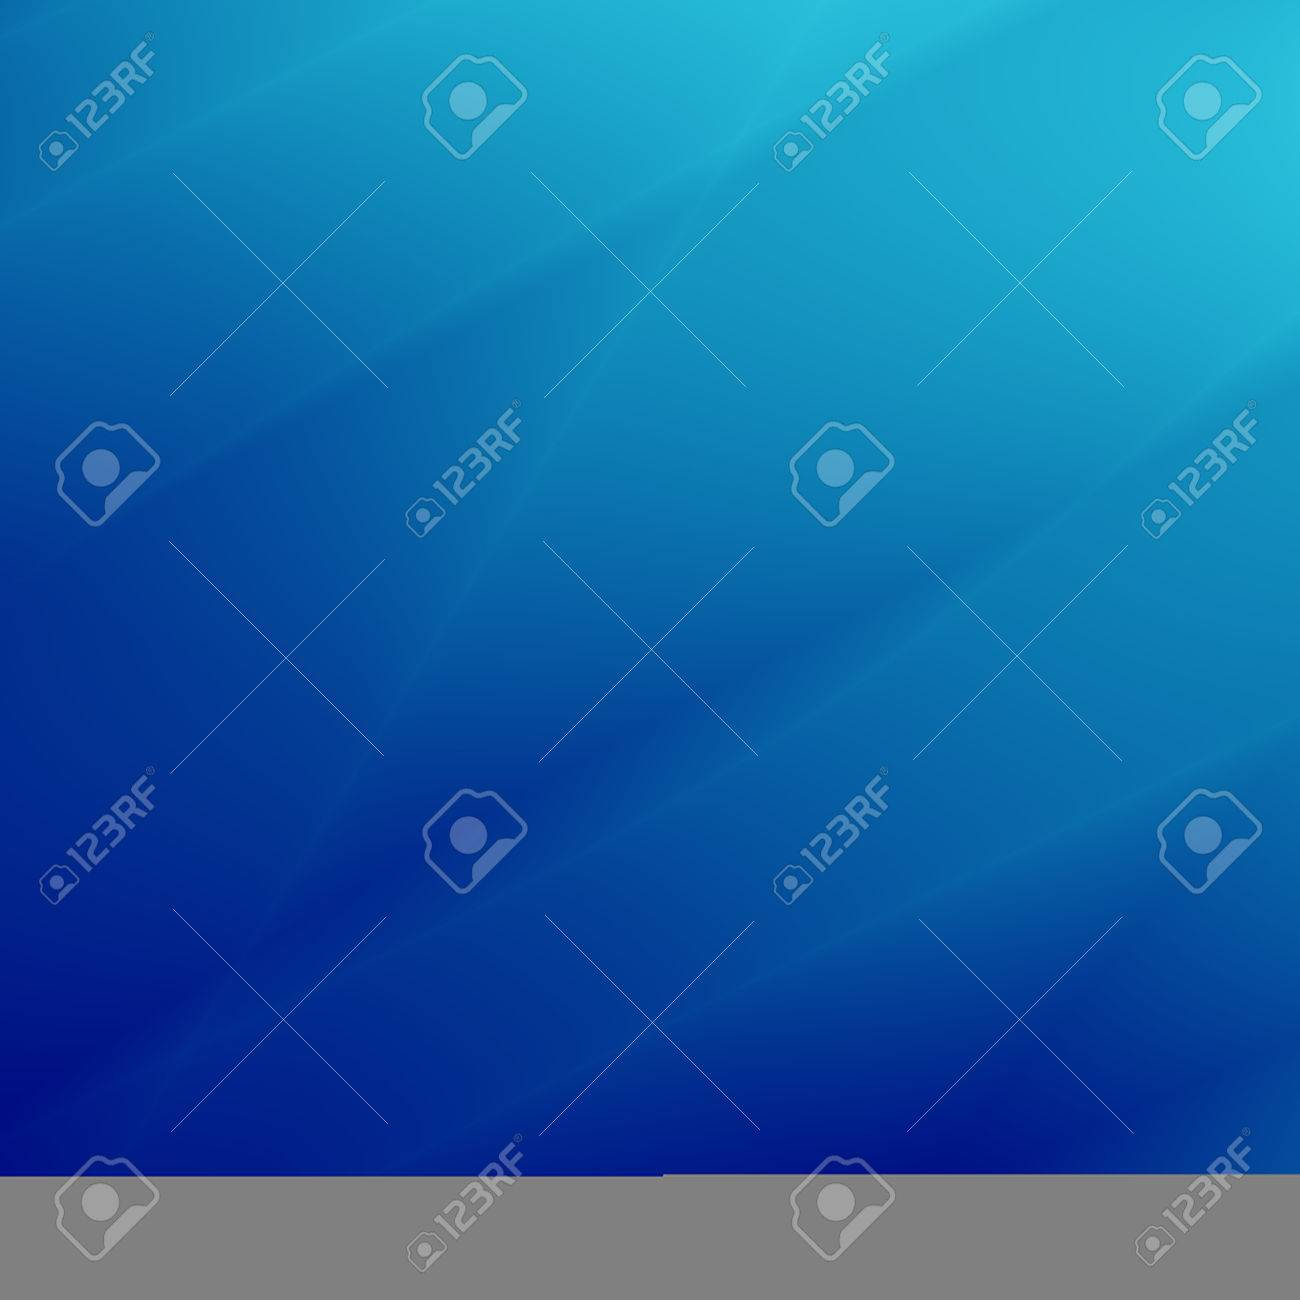 Cool Blue Gradient Abstract Background With Lines Stock Photo Picture And Royalty Free Image Image 55340213